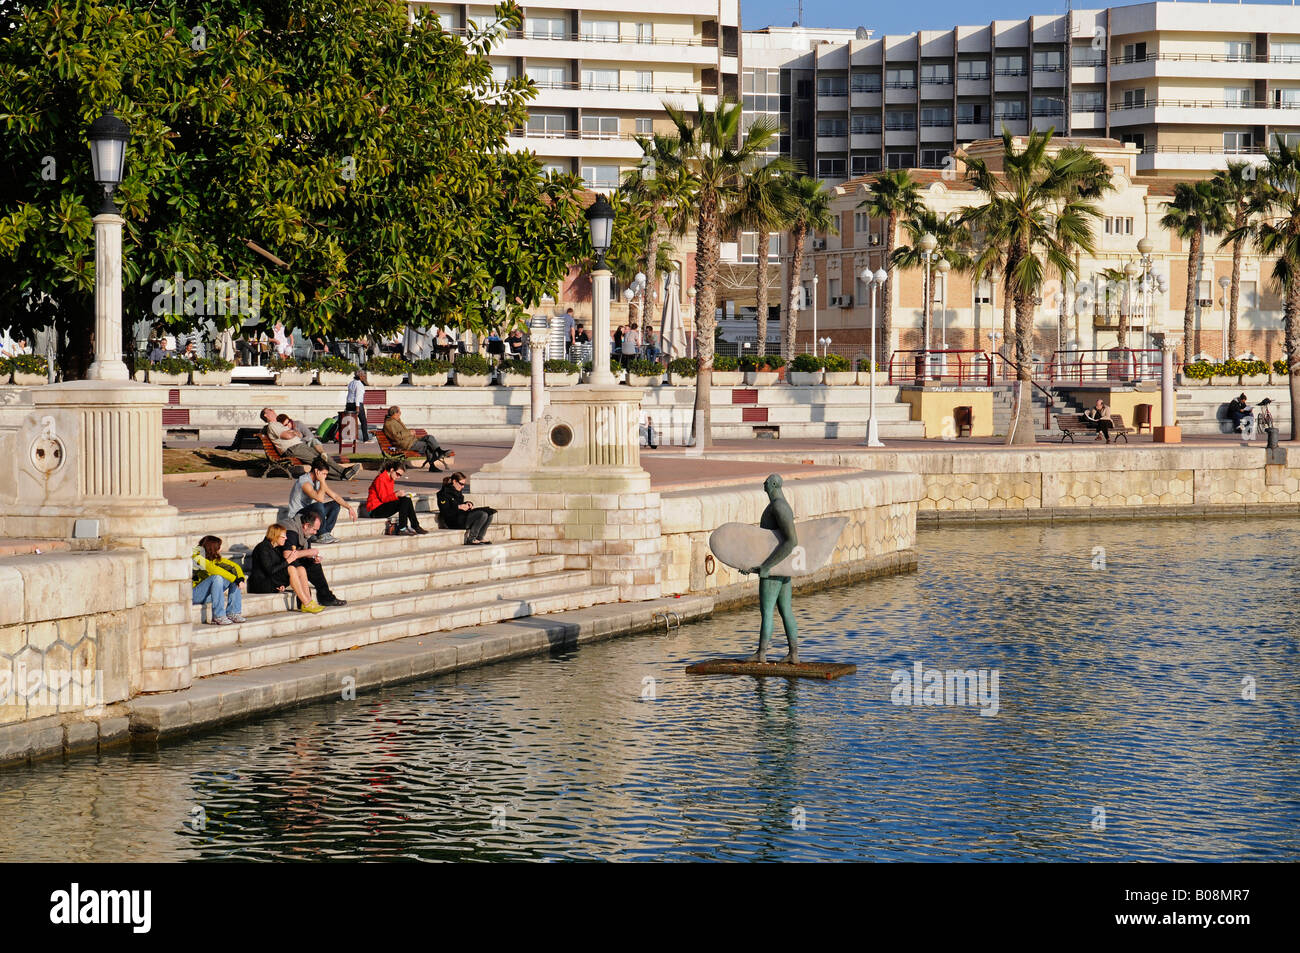 People and sculpture at the marina in Alicante, Costa Blanca, Spain, Europe Stock Photo